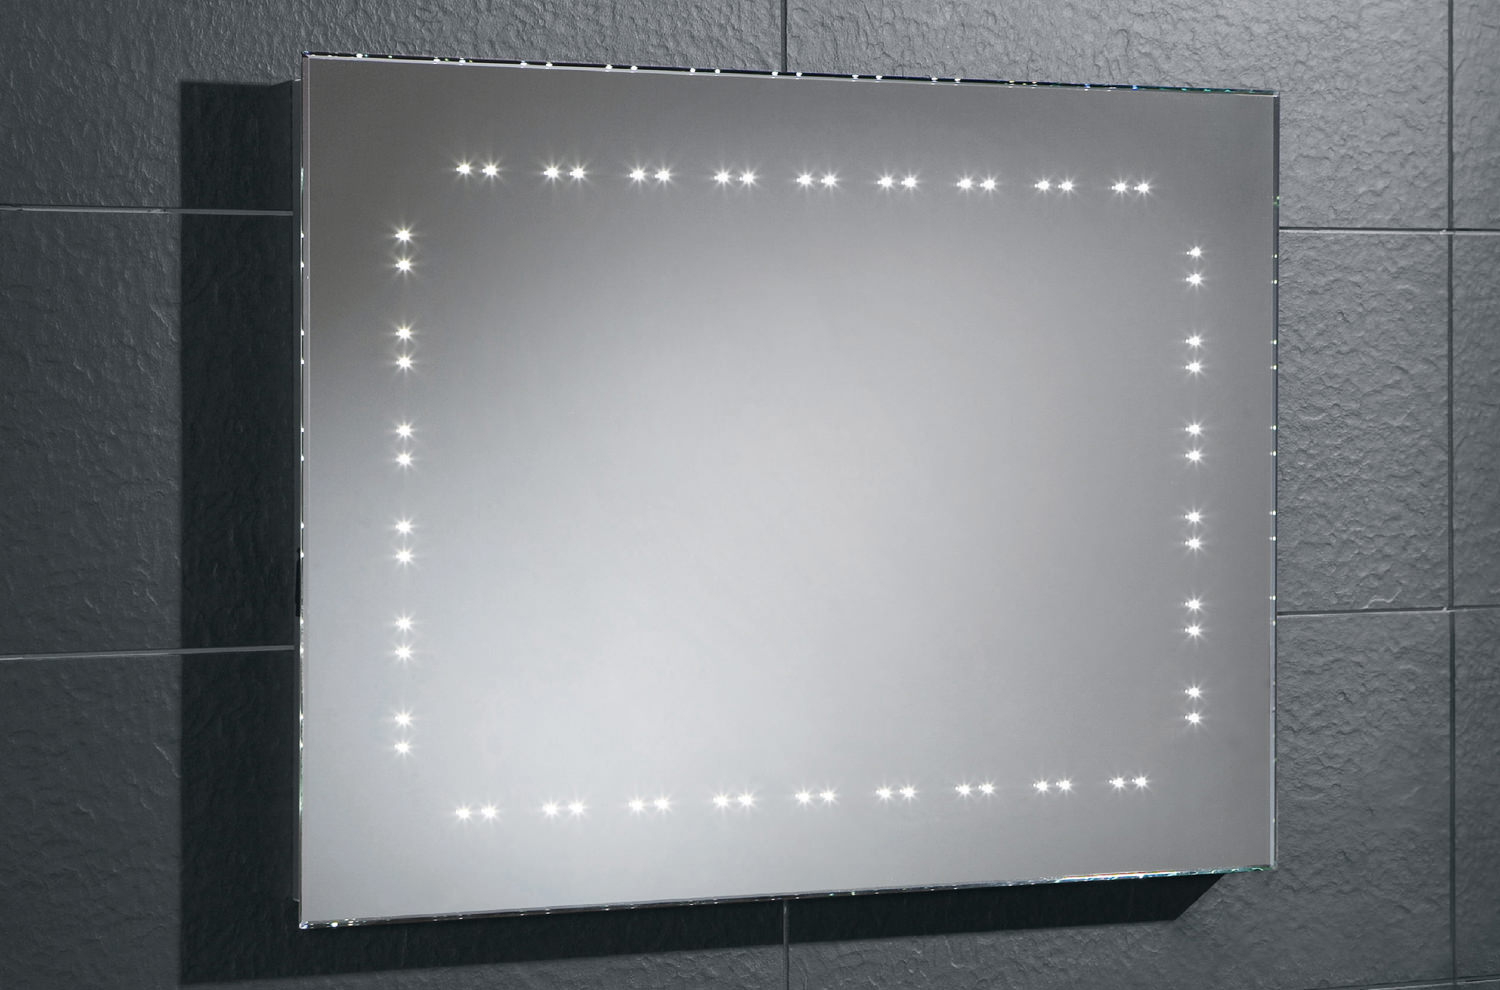 HIB Hannah Bevelled Edge LED Bathroom Mirror 800 X 600mm